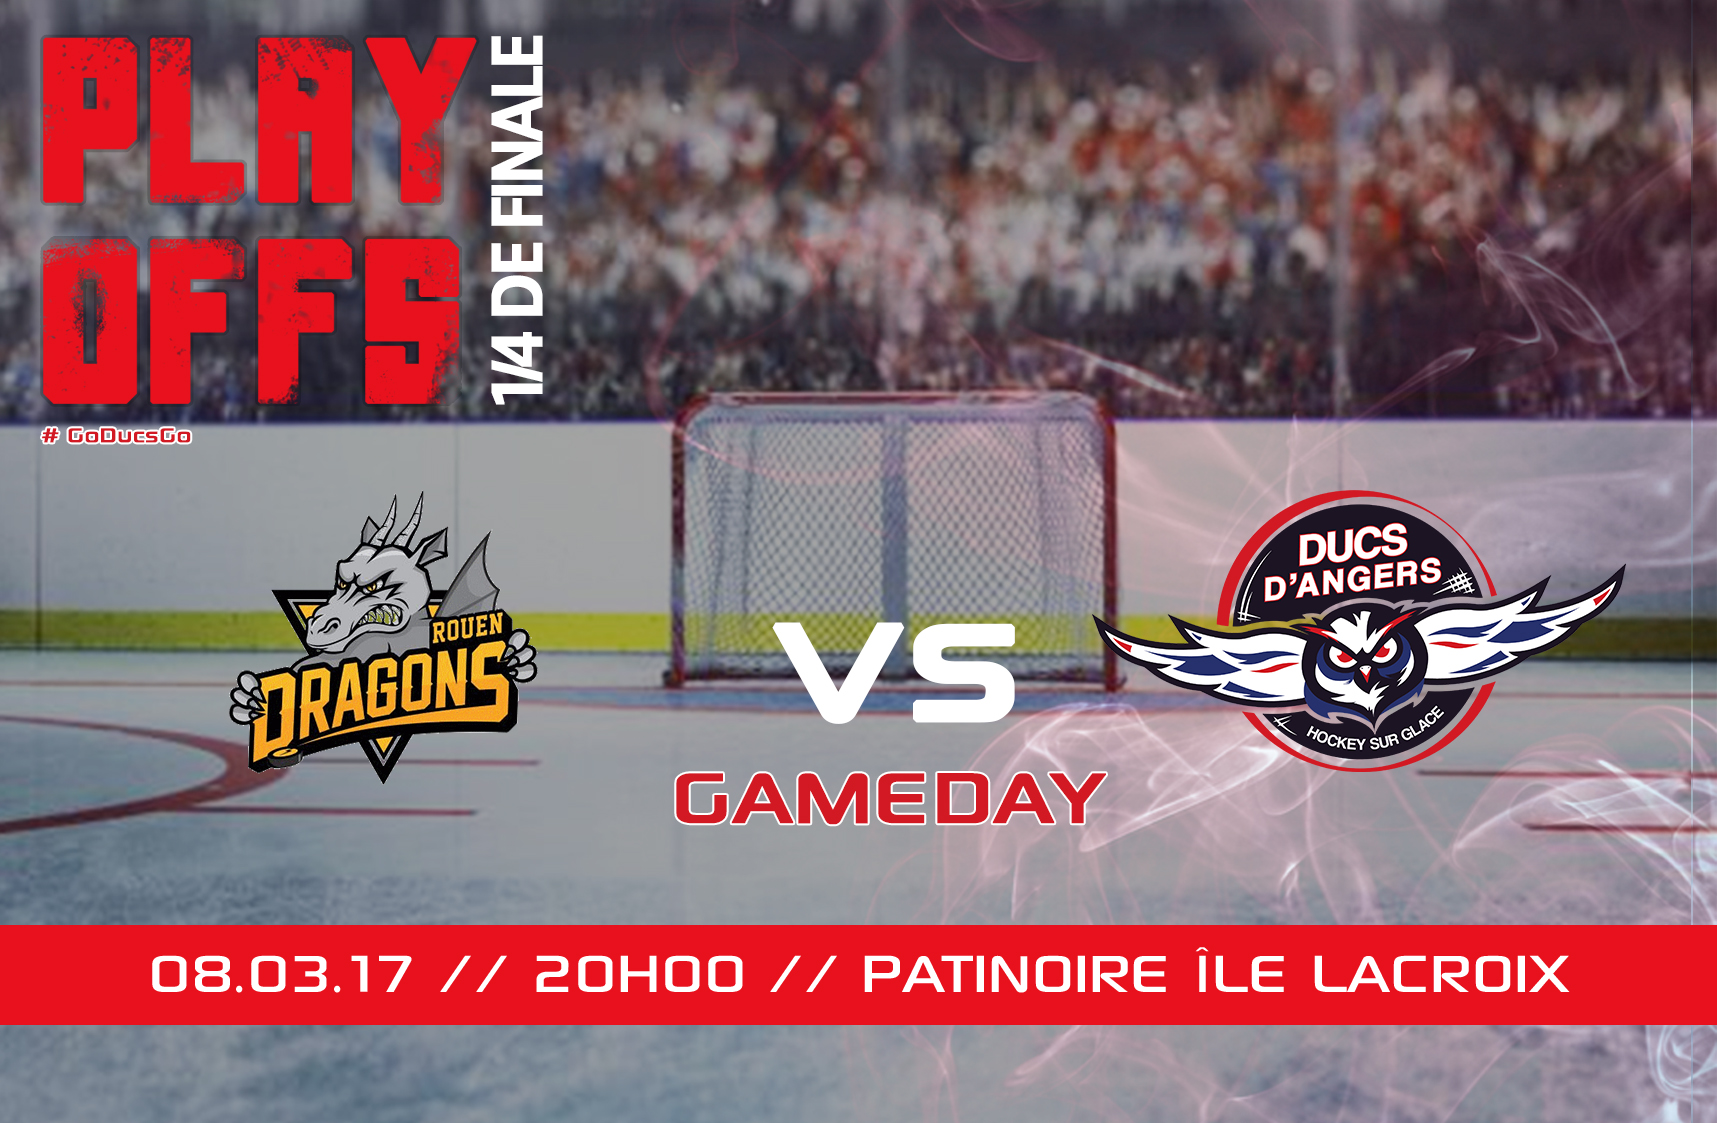 //GAME DAY// J.5 – #PlayOff // 08.03.17